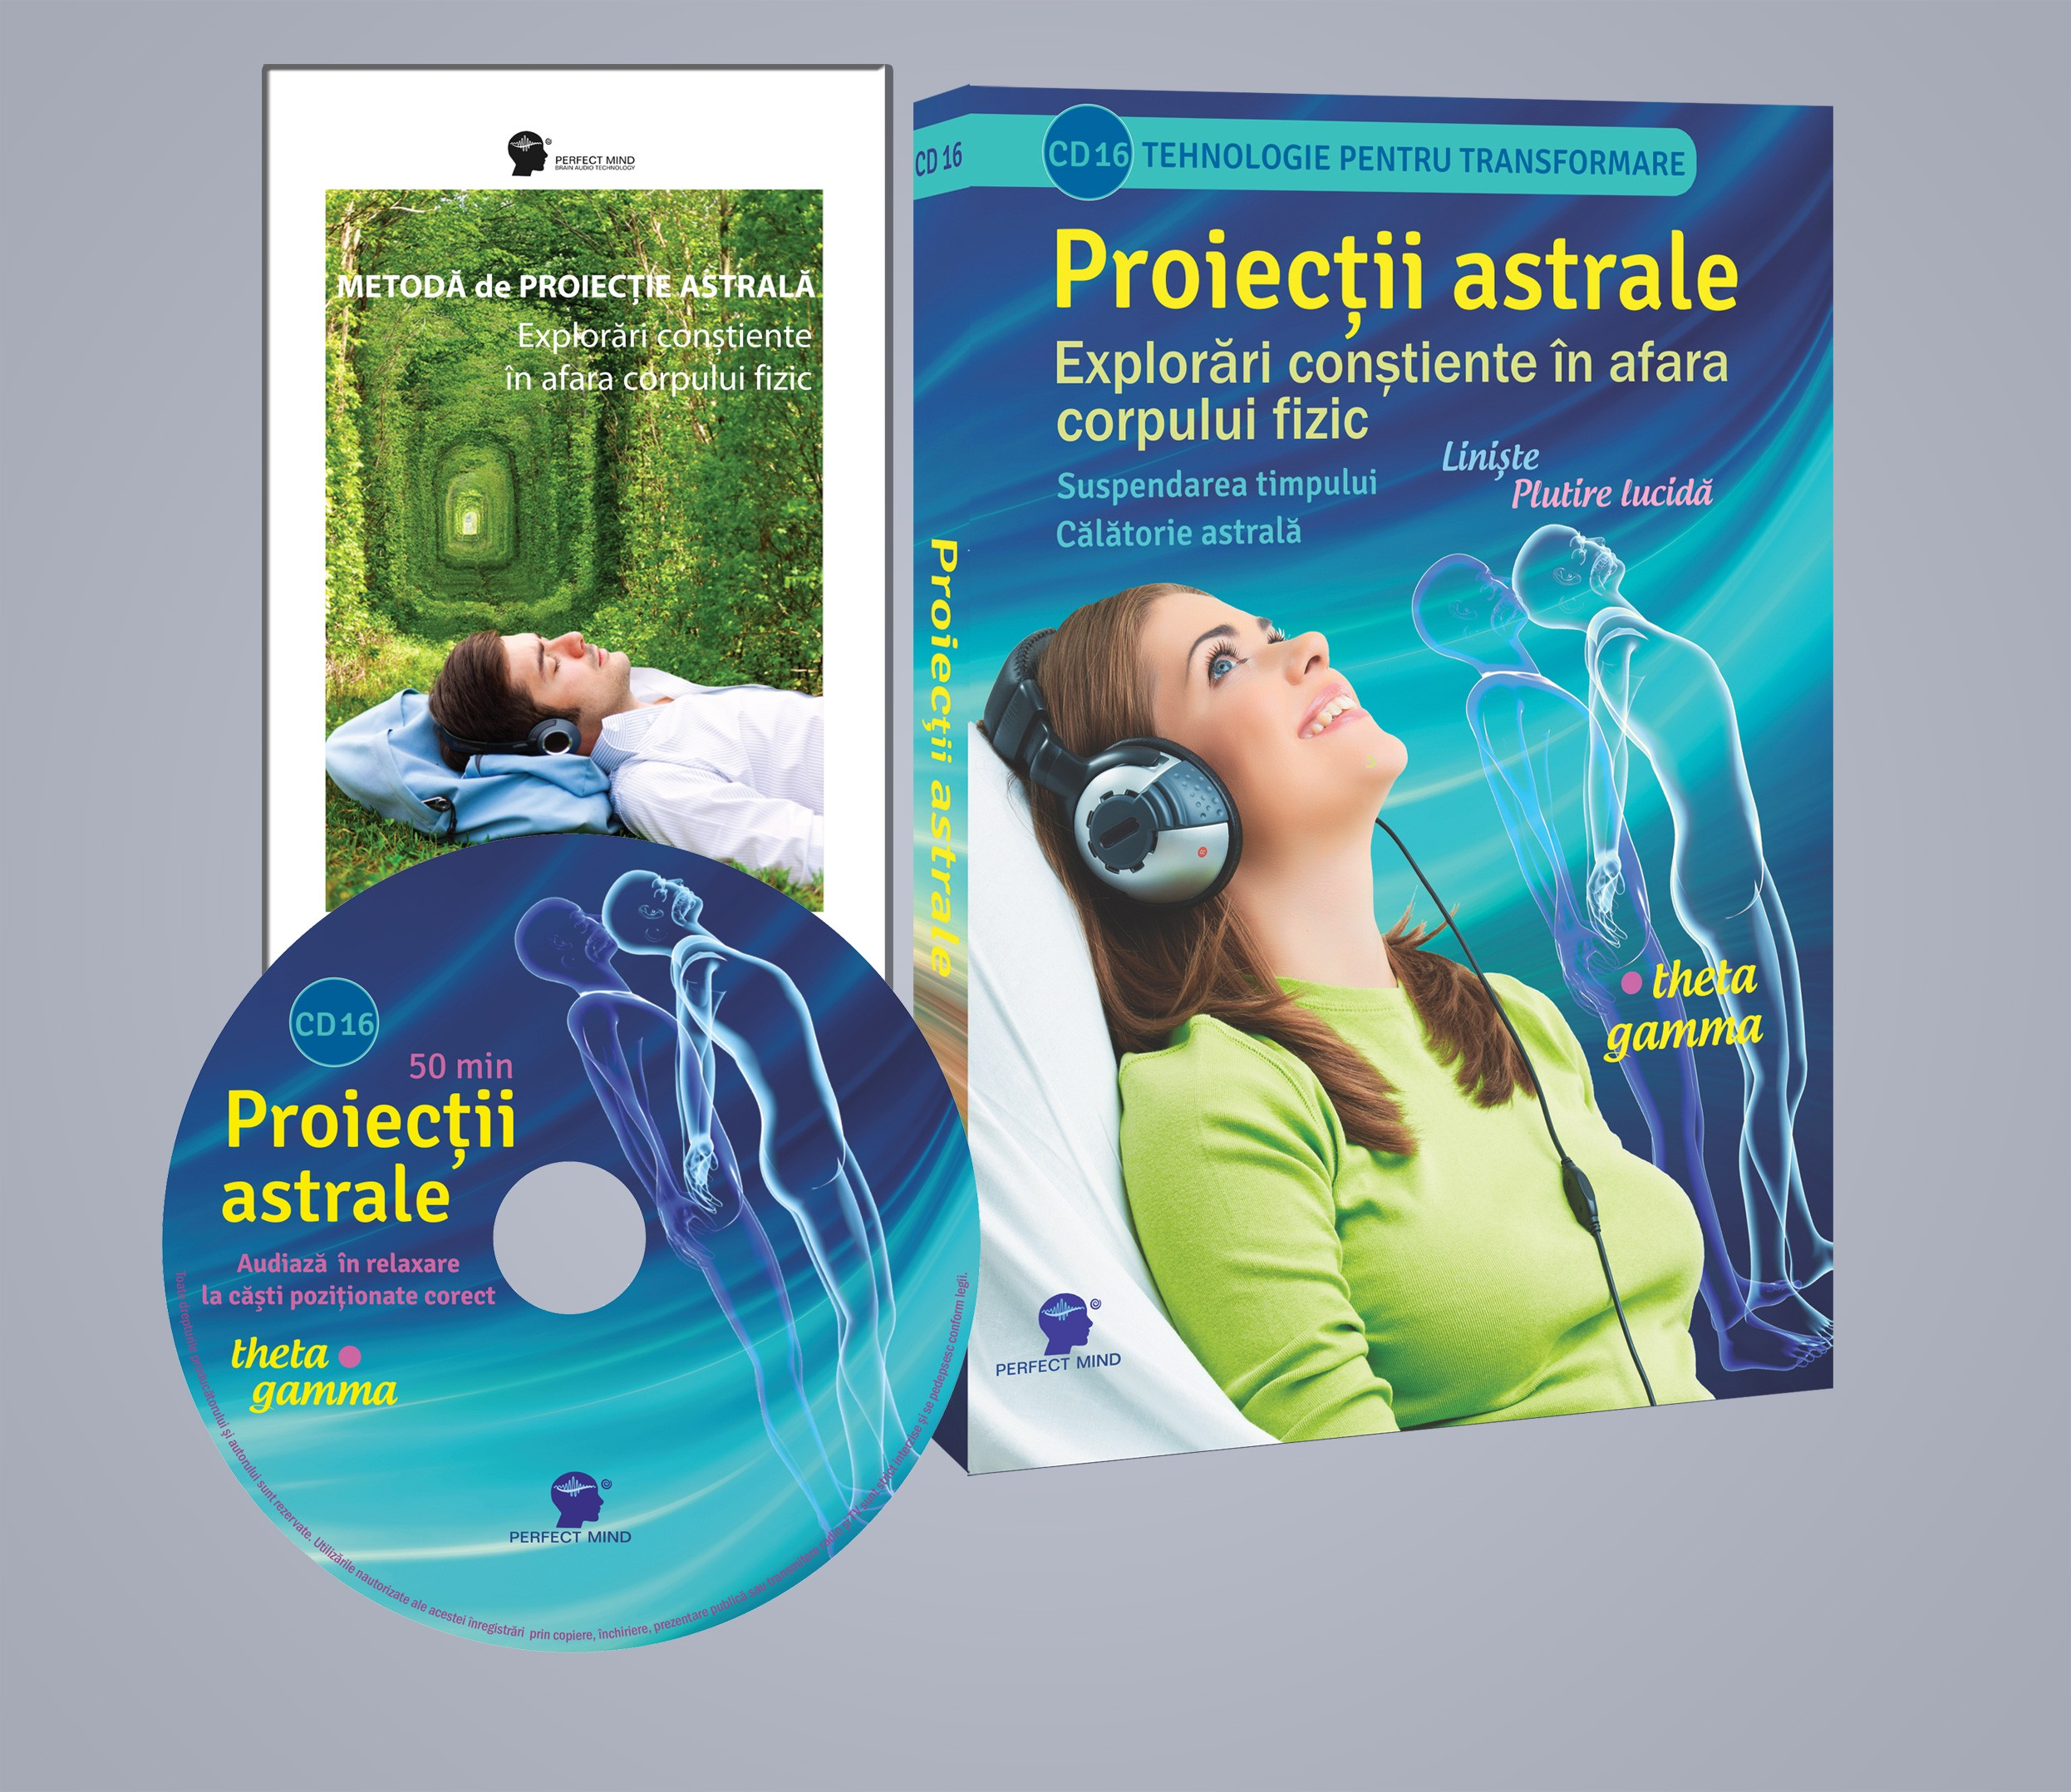 CD 16 - Proiectii Astrale